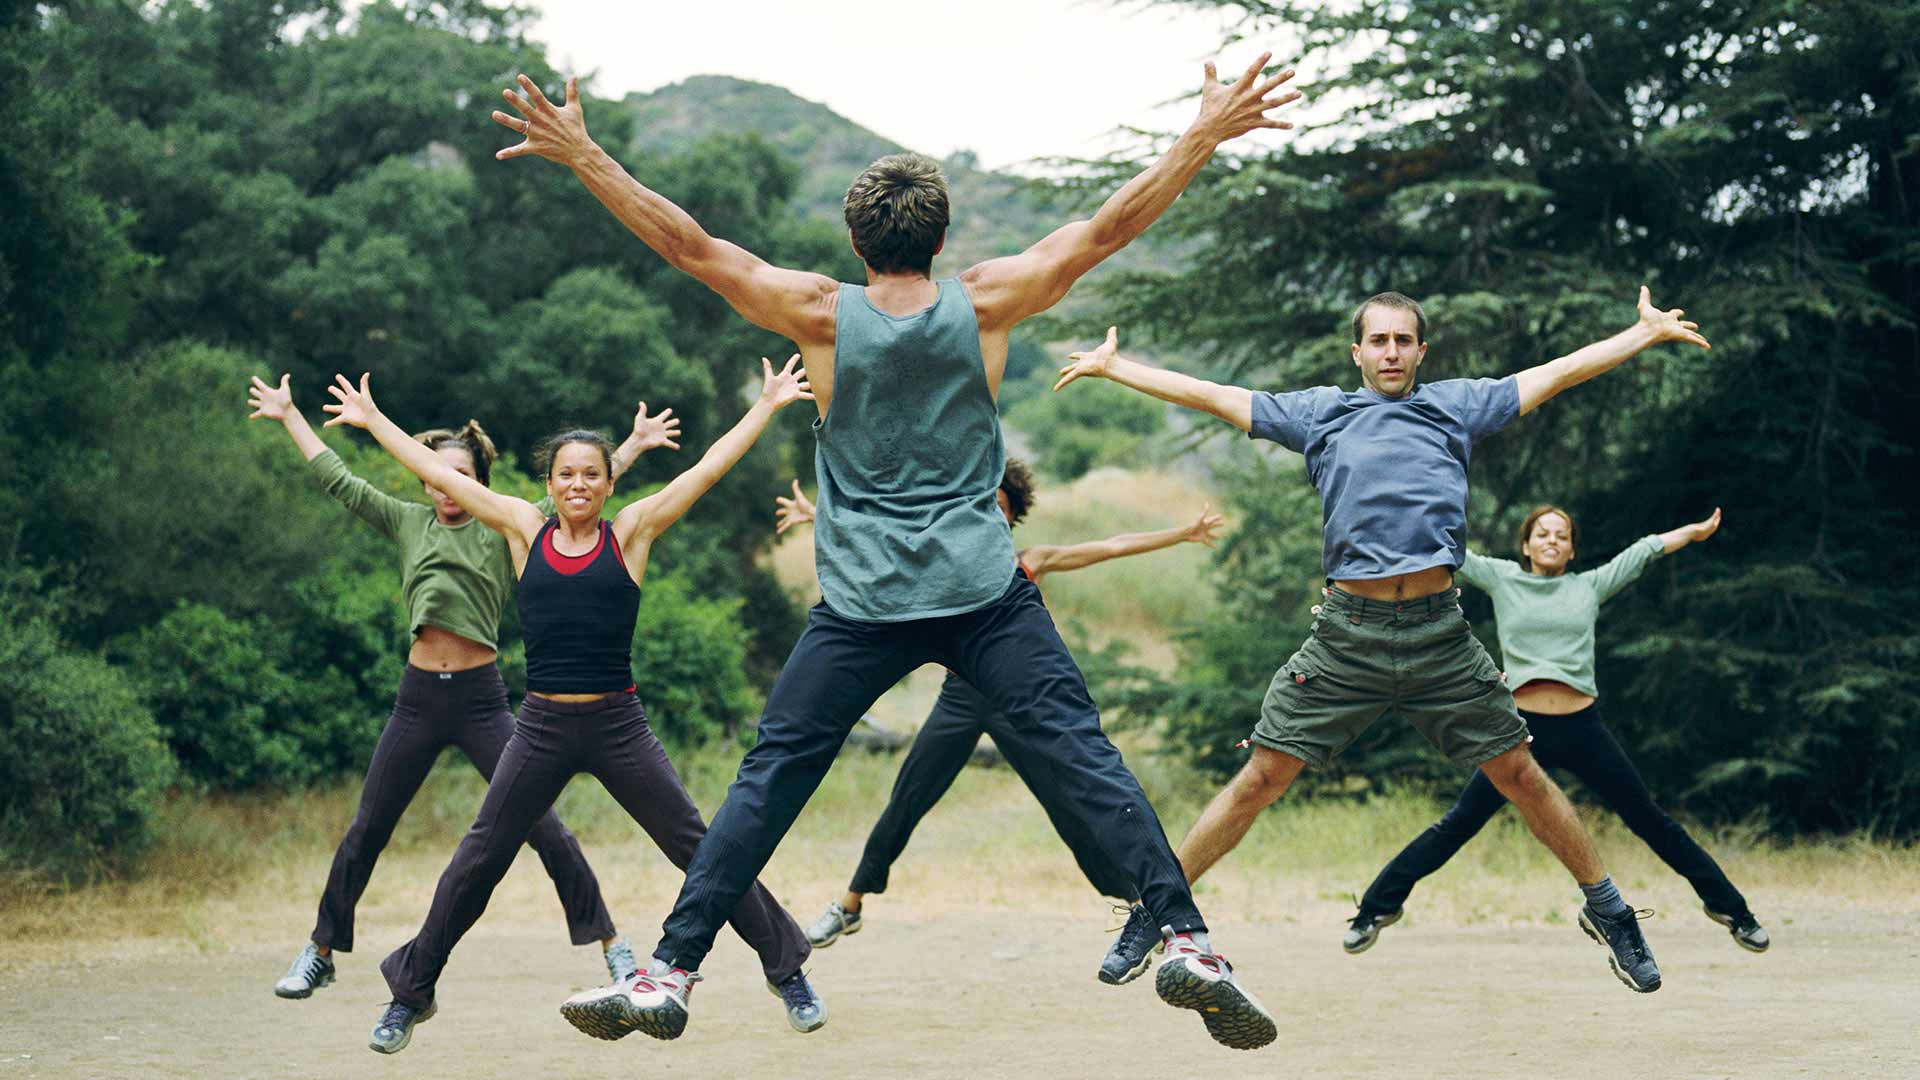 Group doing star jumps in park